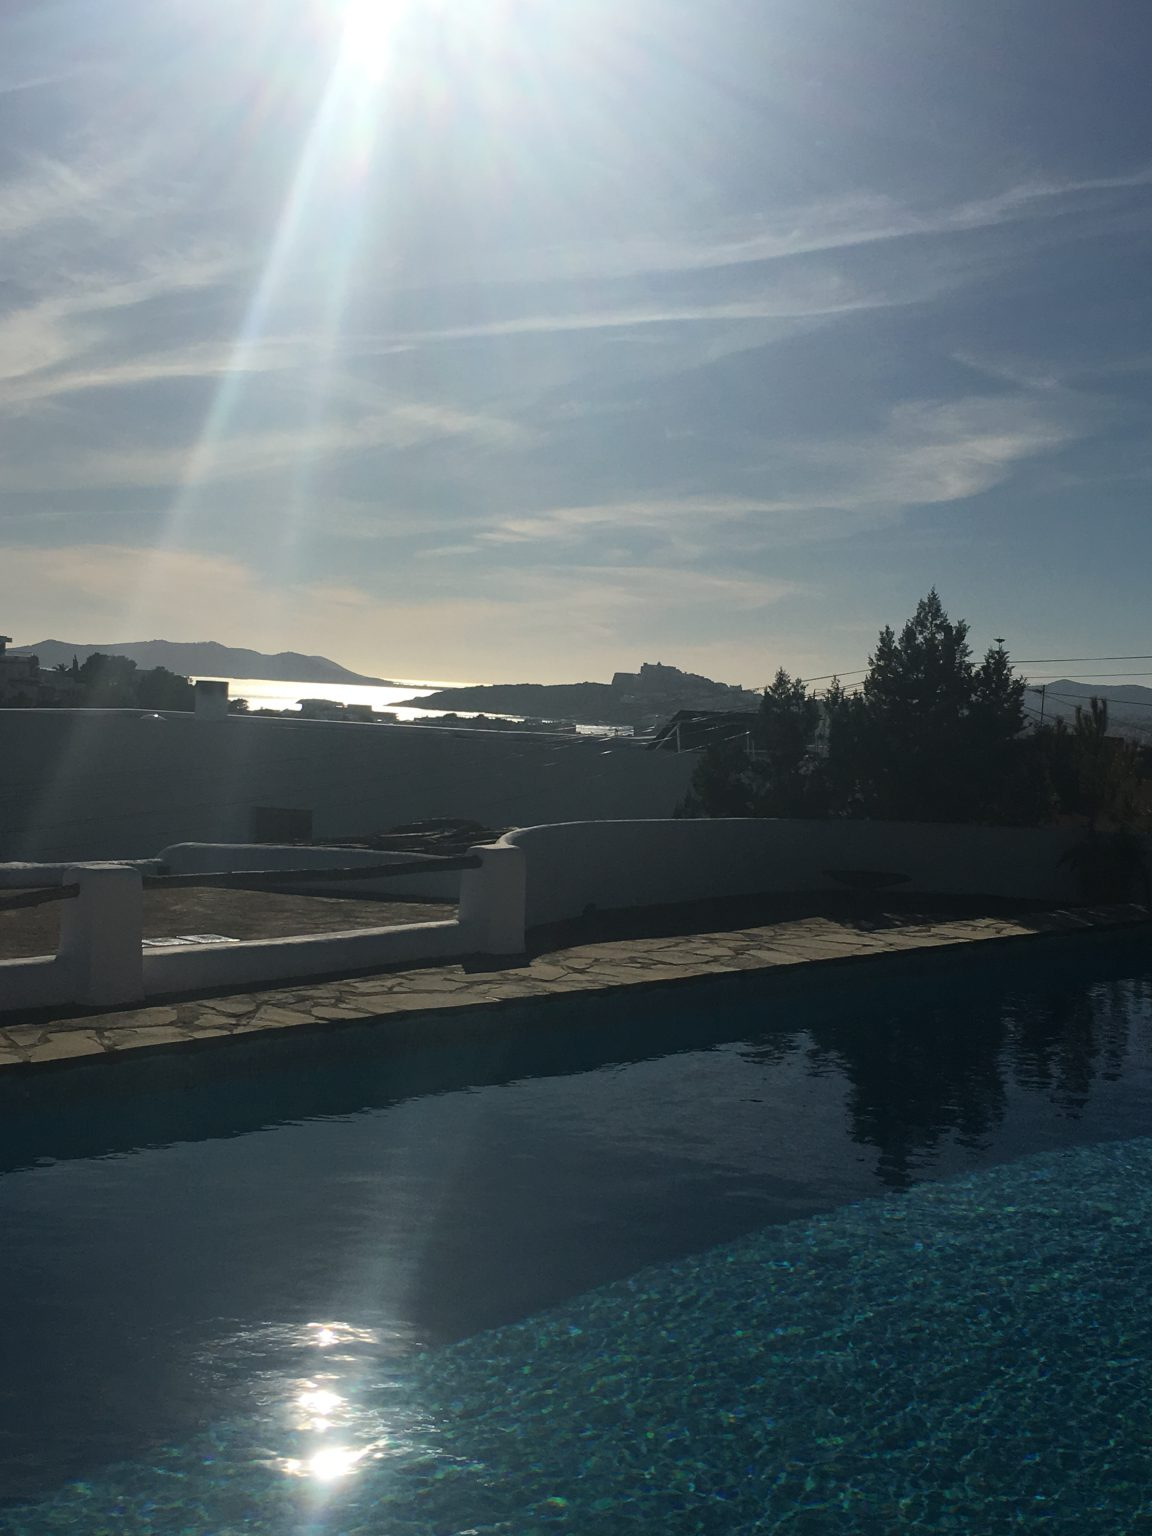 Finca Ibiza Jesus Old Rustic Potential Rennovation Character Pool